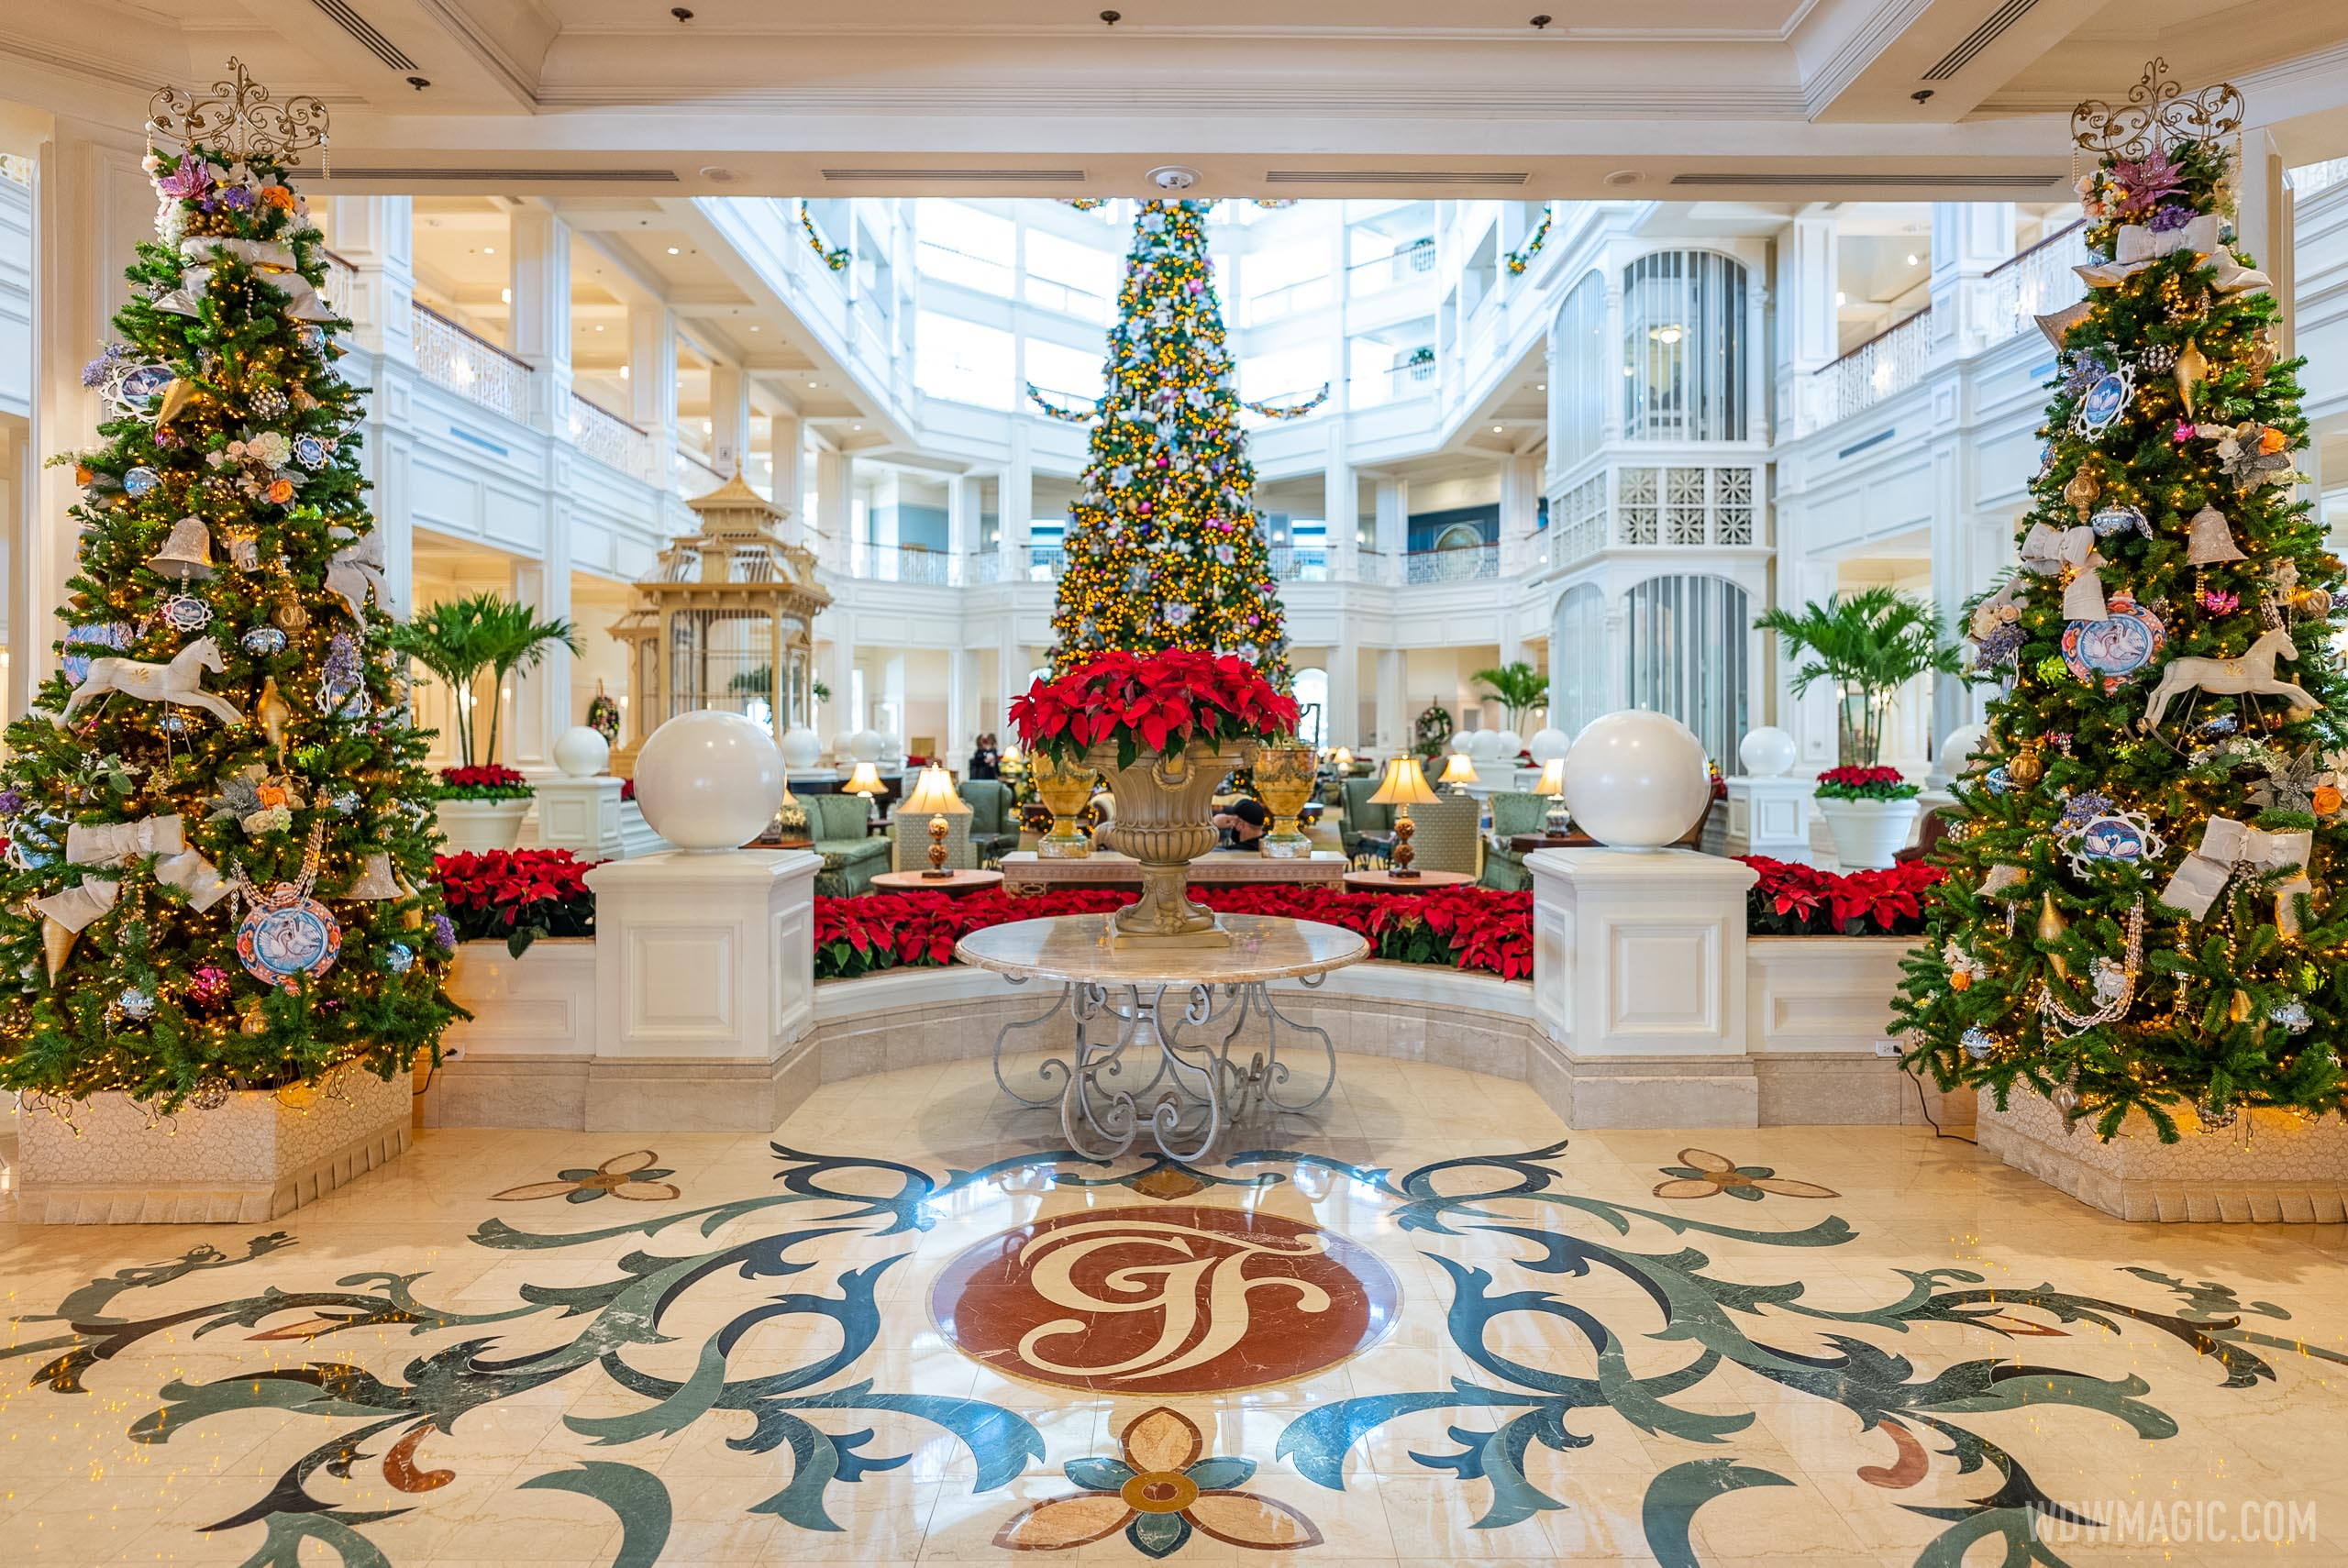 Disneys-Grand-Floridian-Resort-and-Spa_Full_39965.jpg